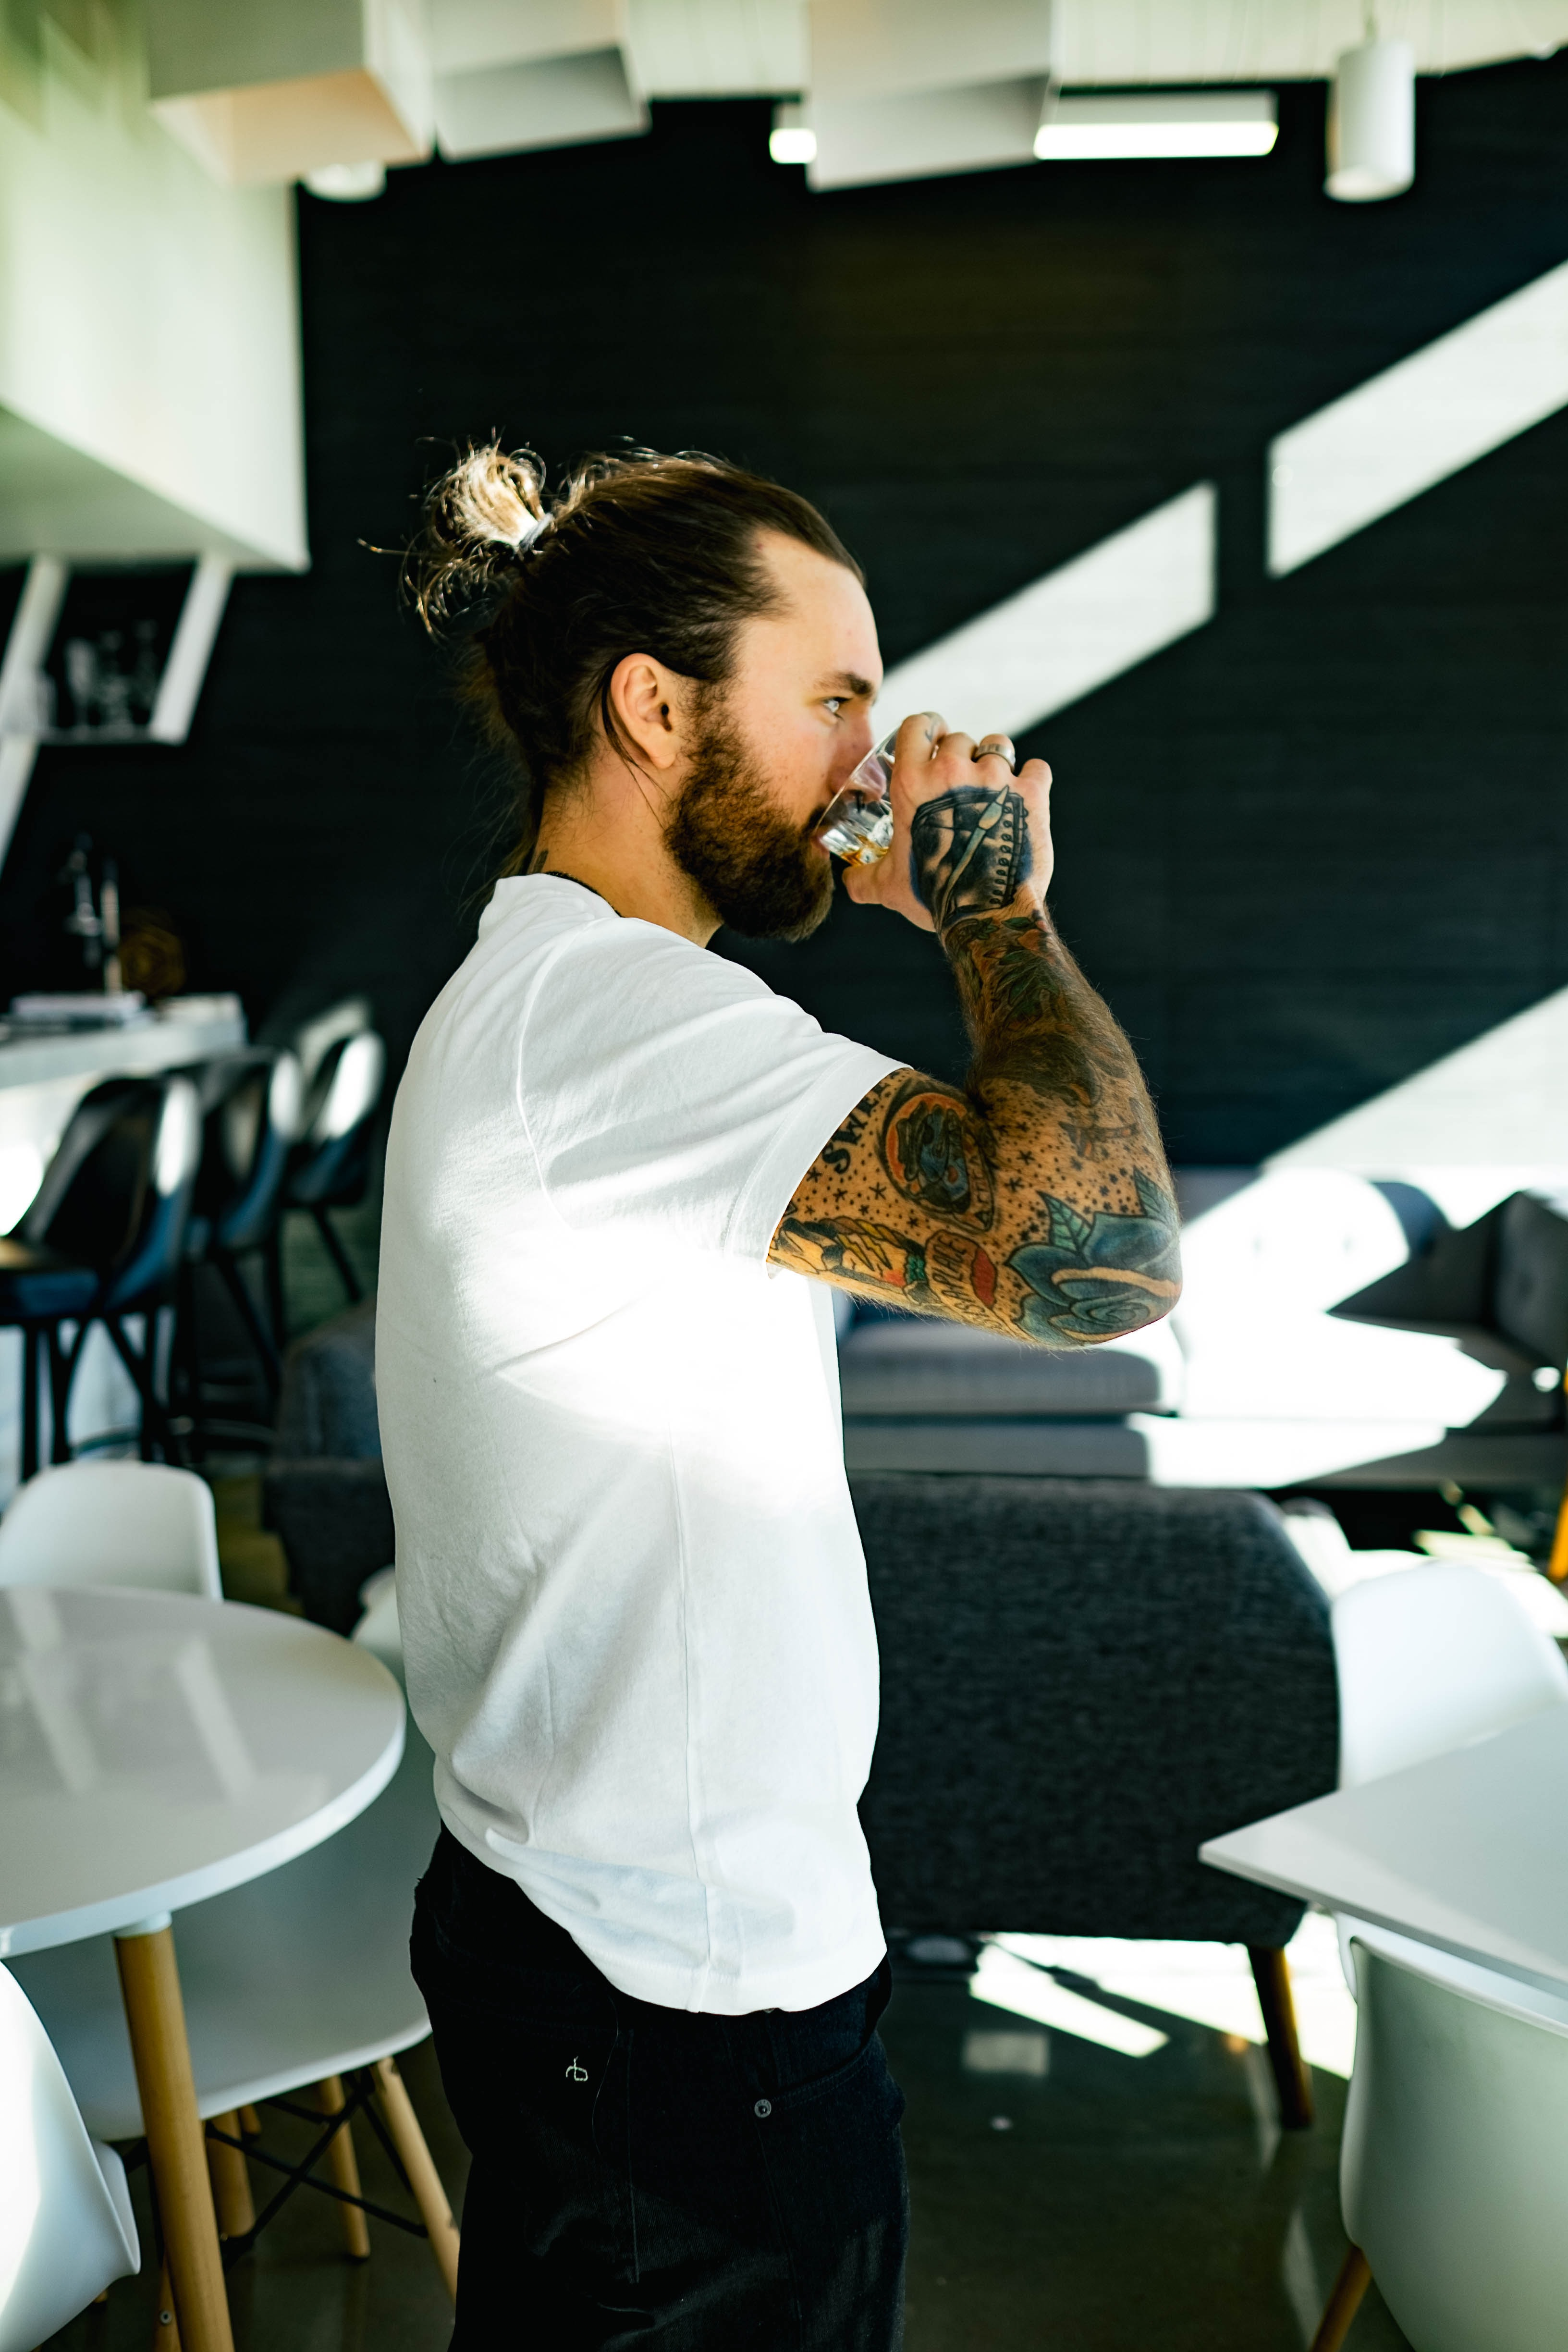 Man with colorful arm tattoos taking a sip from a glass while standing in a restaurant